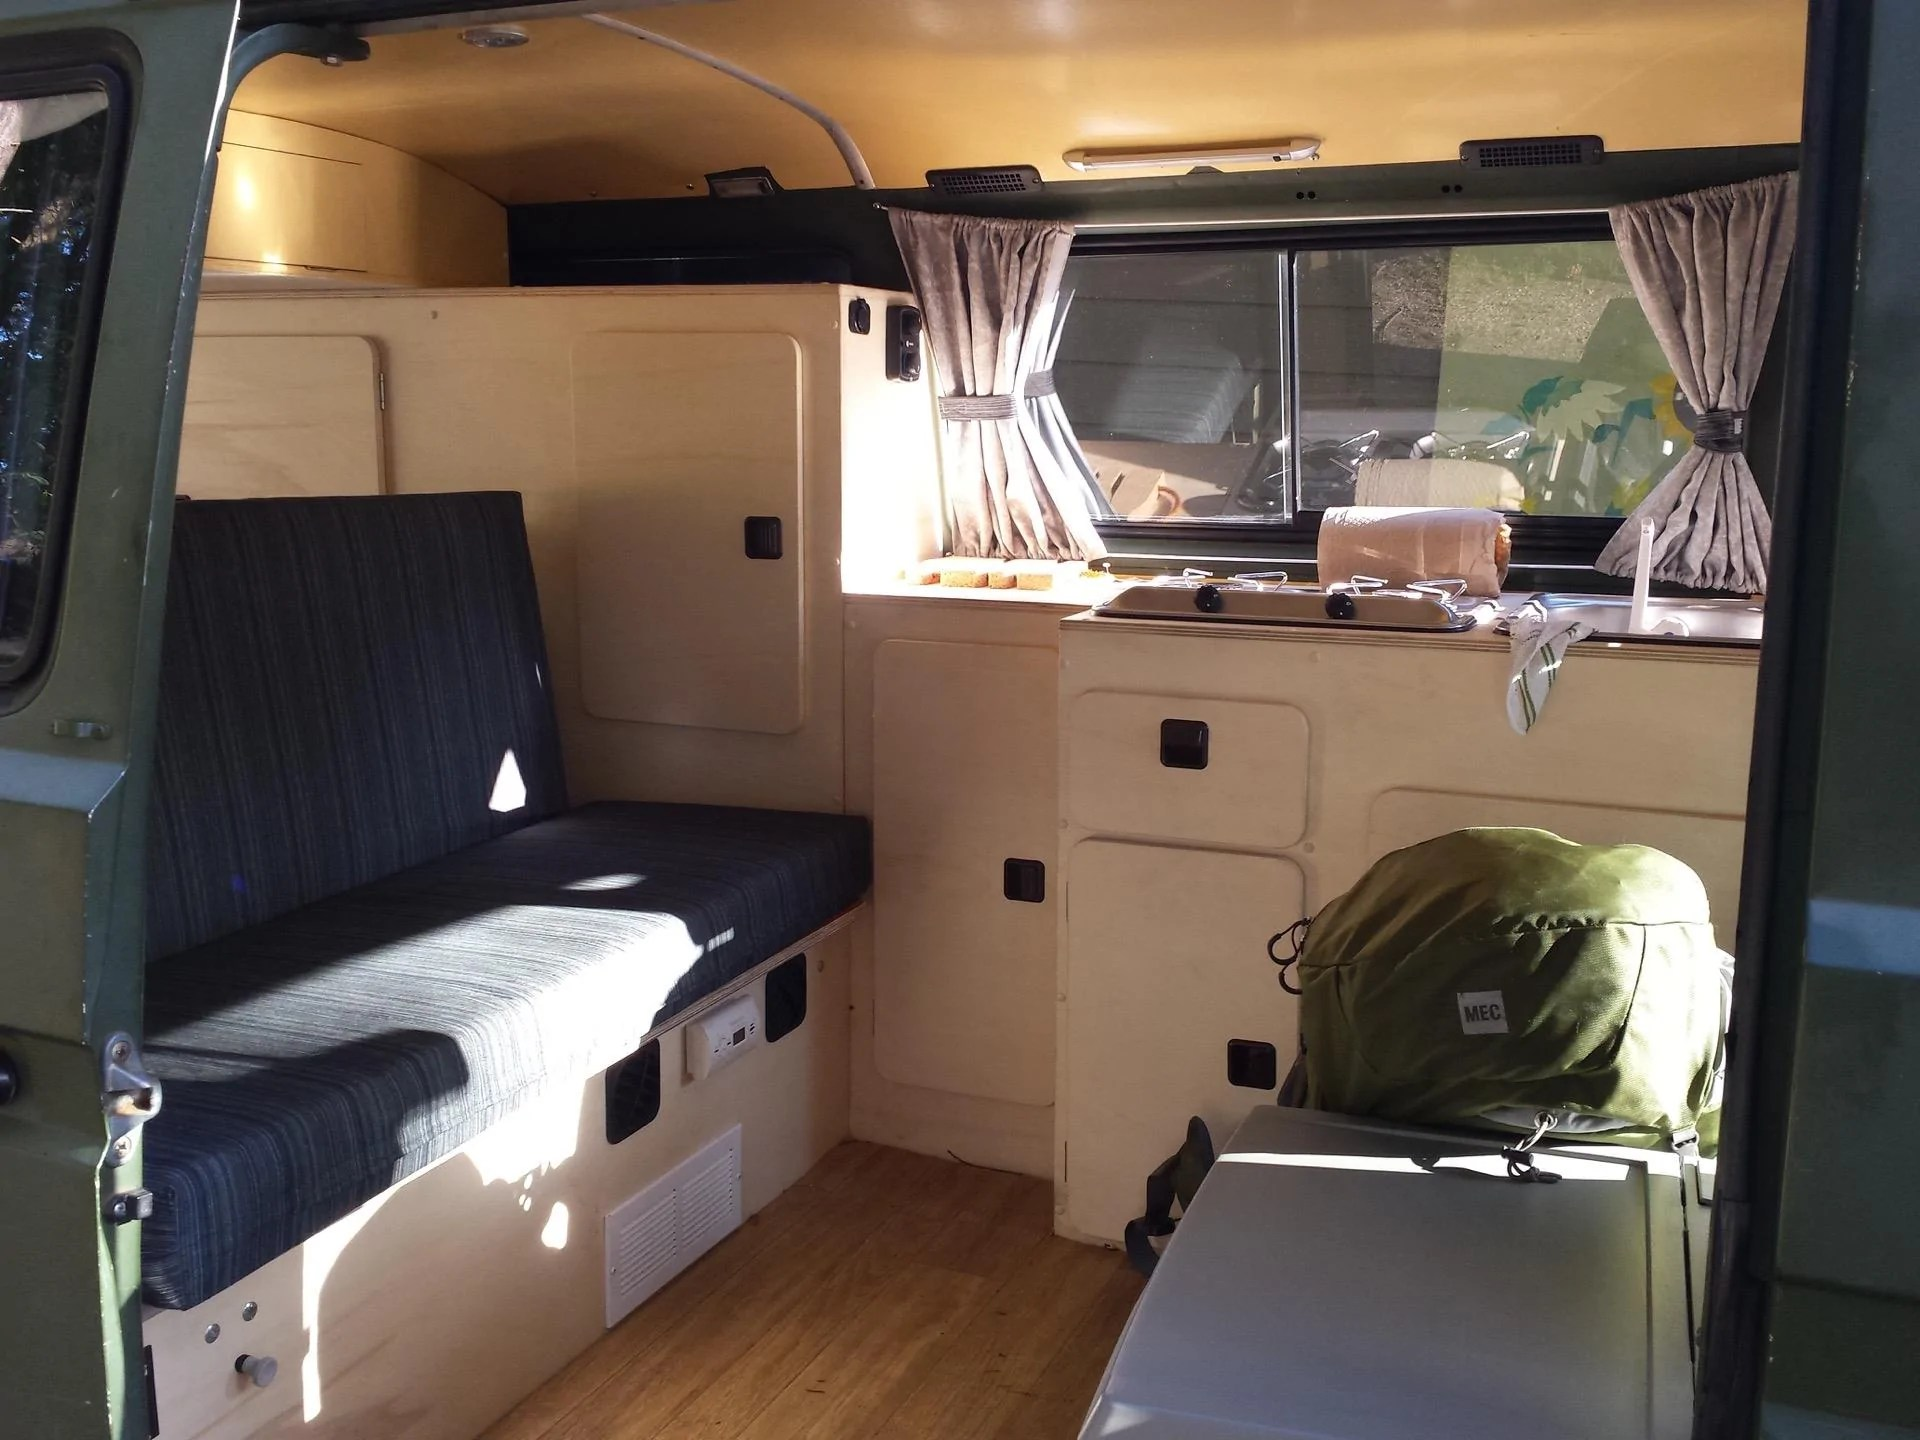 Reimo T3 Interior Conversion Kit   Jolly       Dr  Bj    rn s Auto Reimo T3 Interior Conversion Kit   Jolly